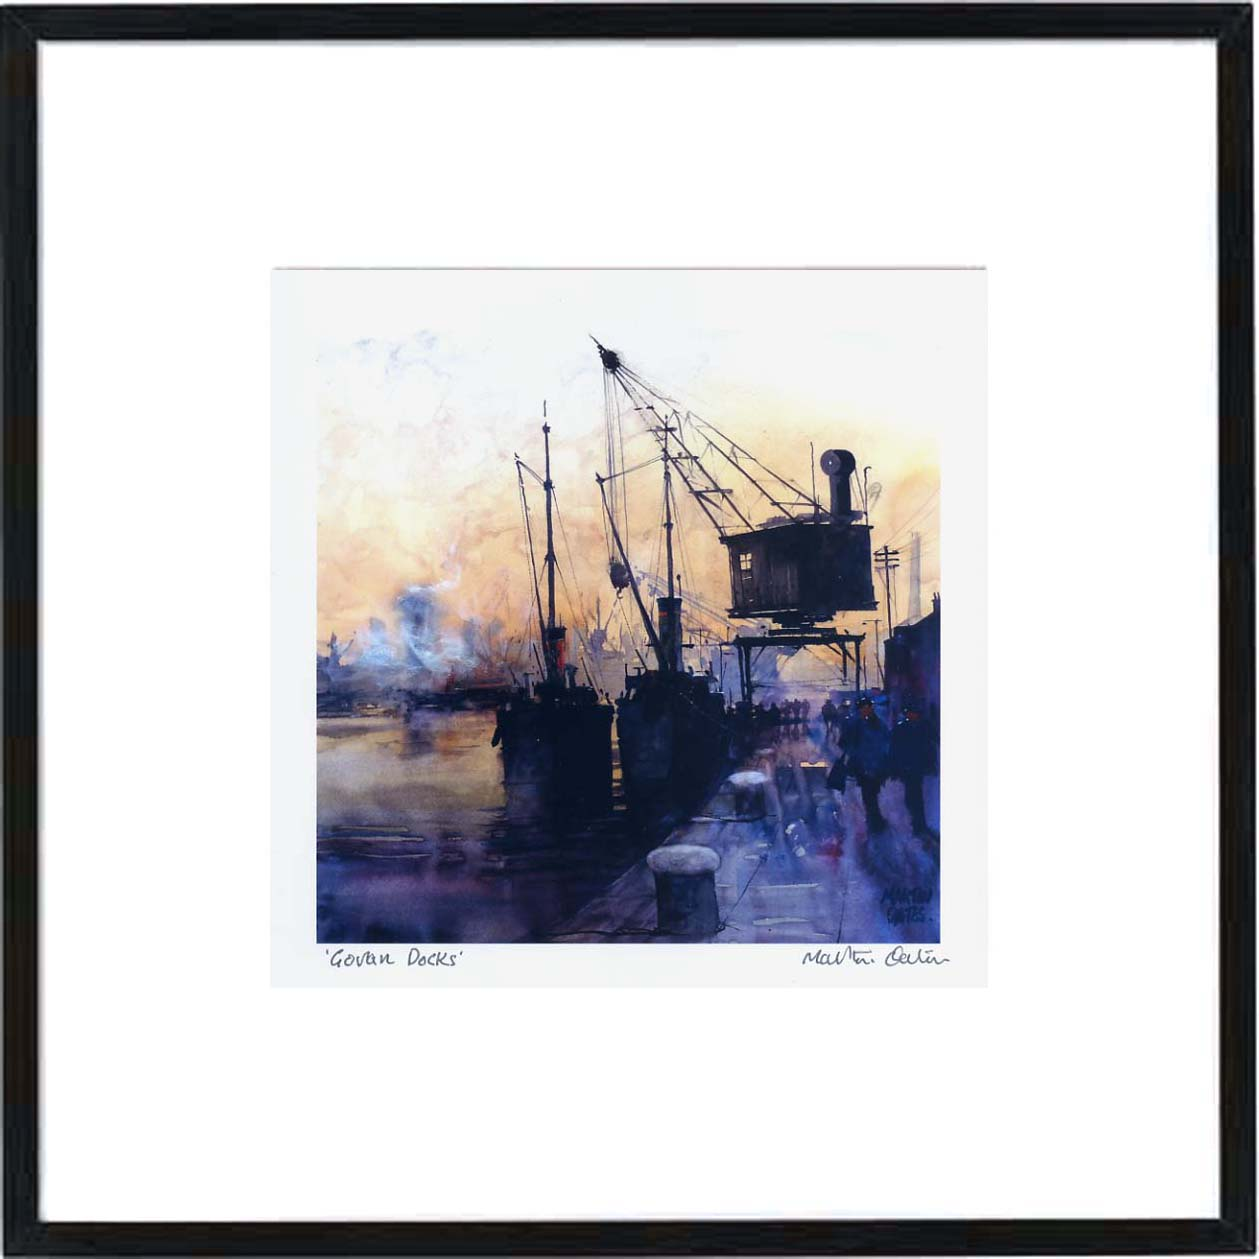 Govan Docks Framed Print